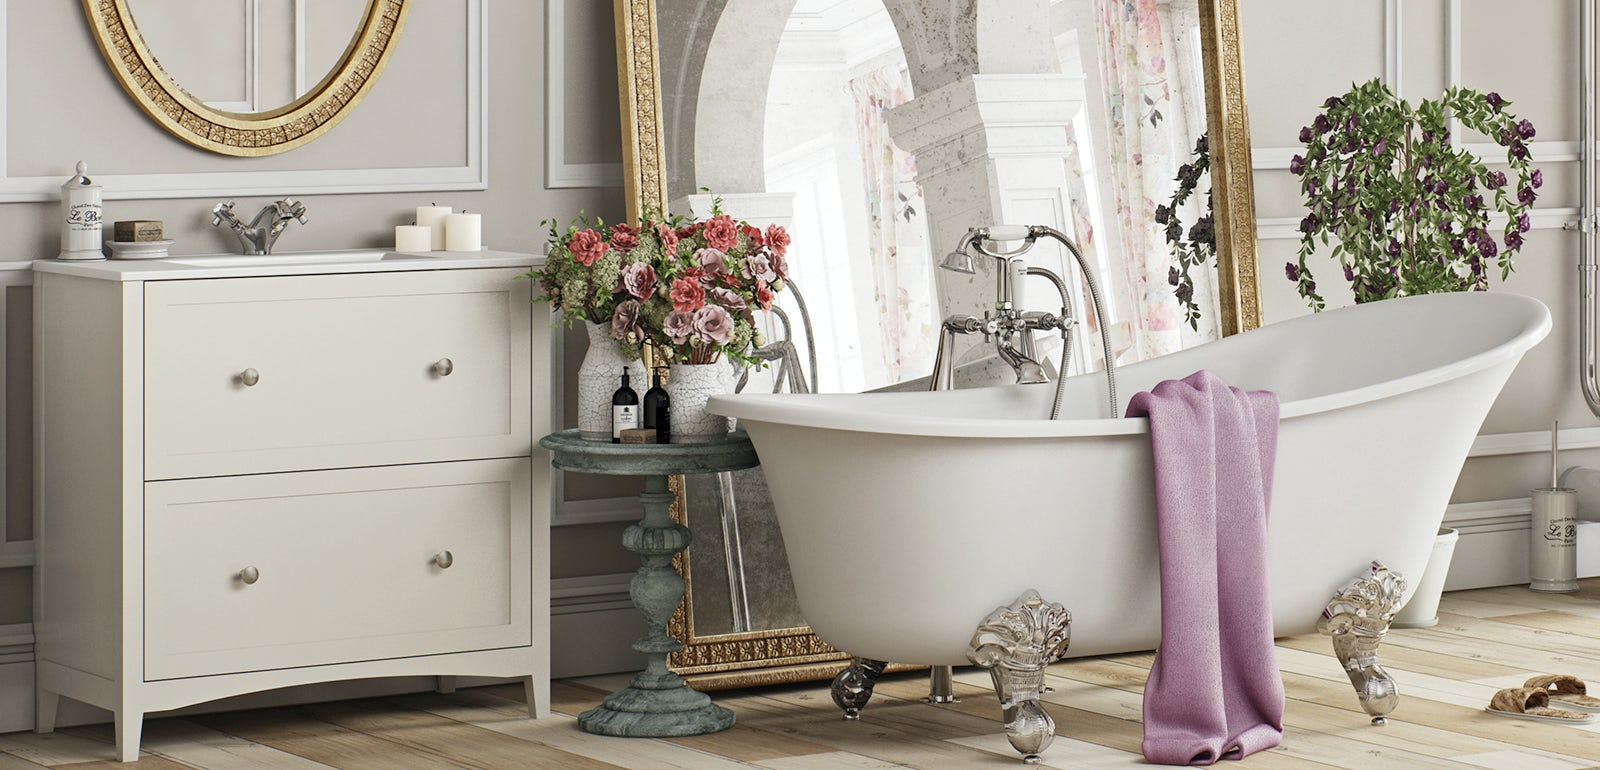 13 easy ways to accessorise your bathroom